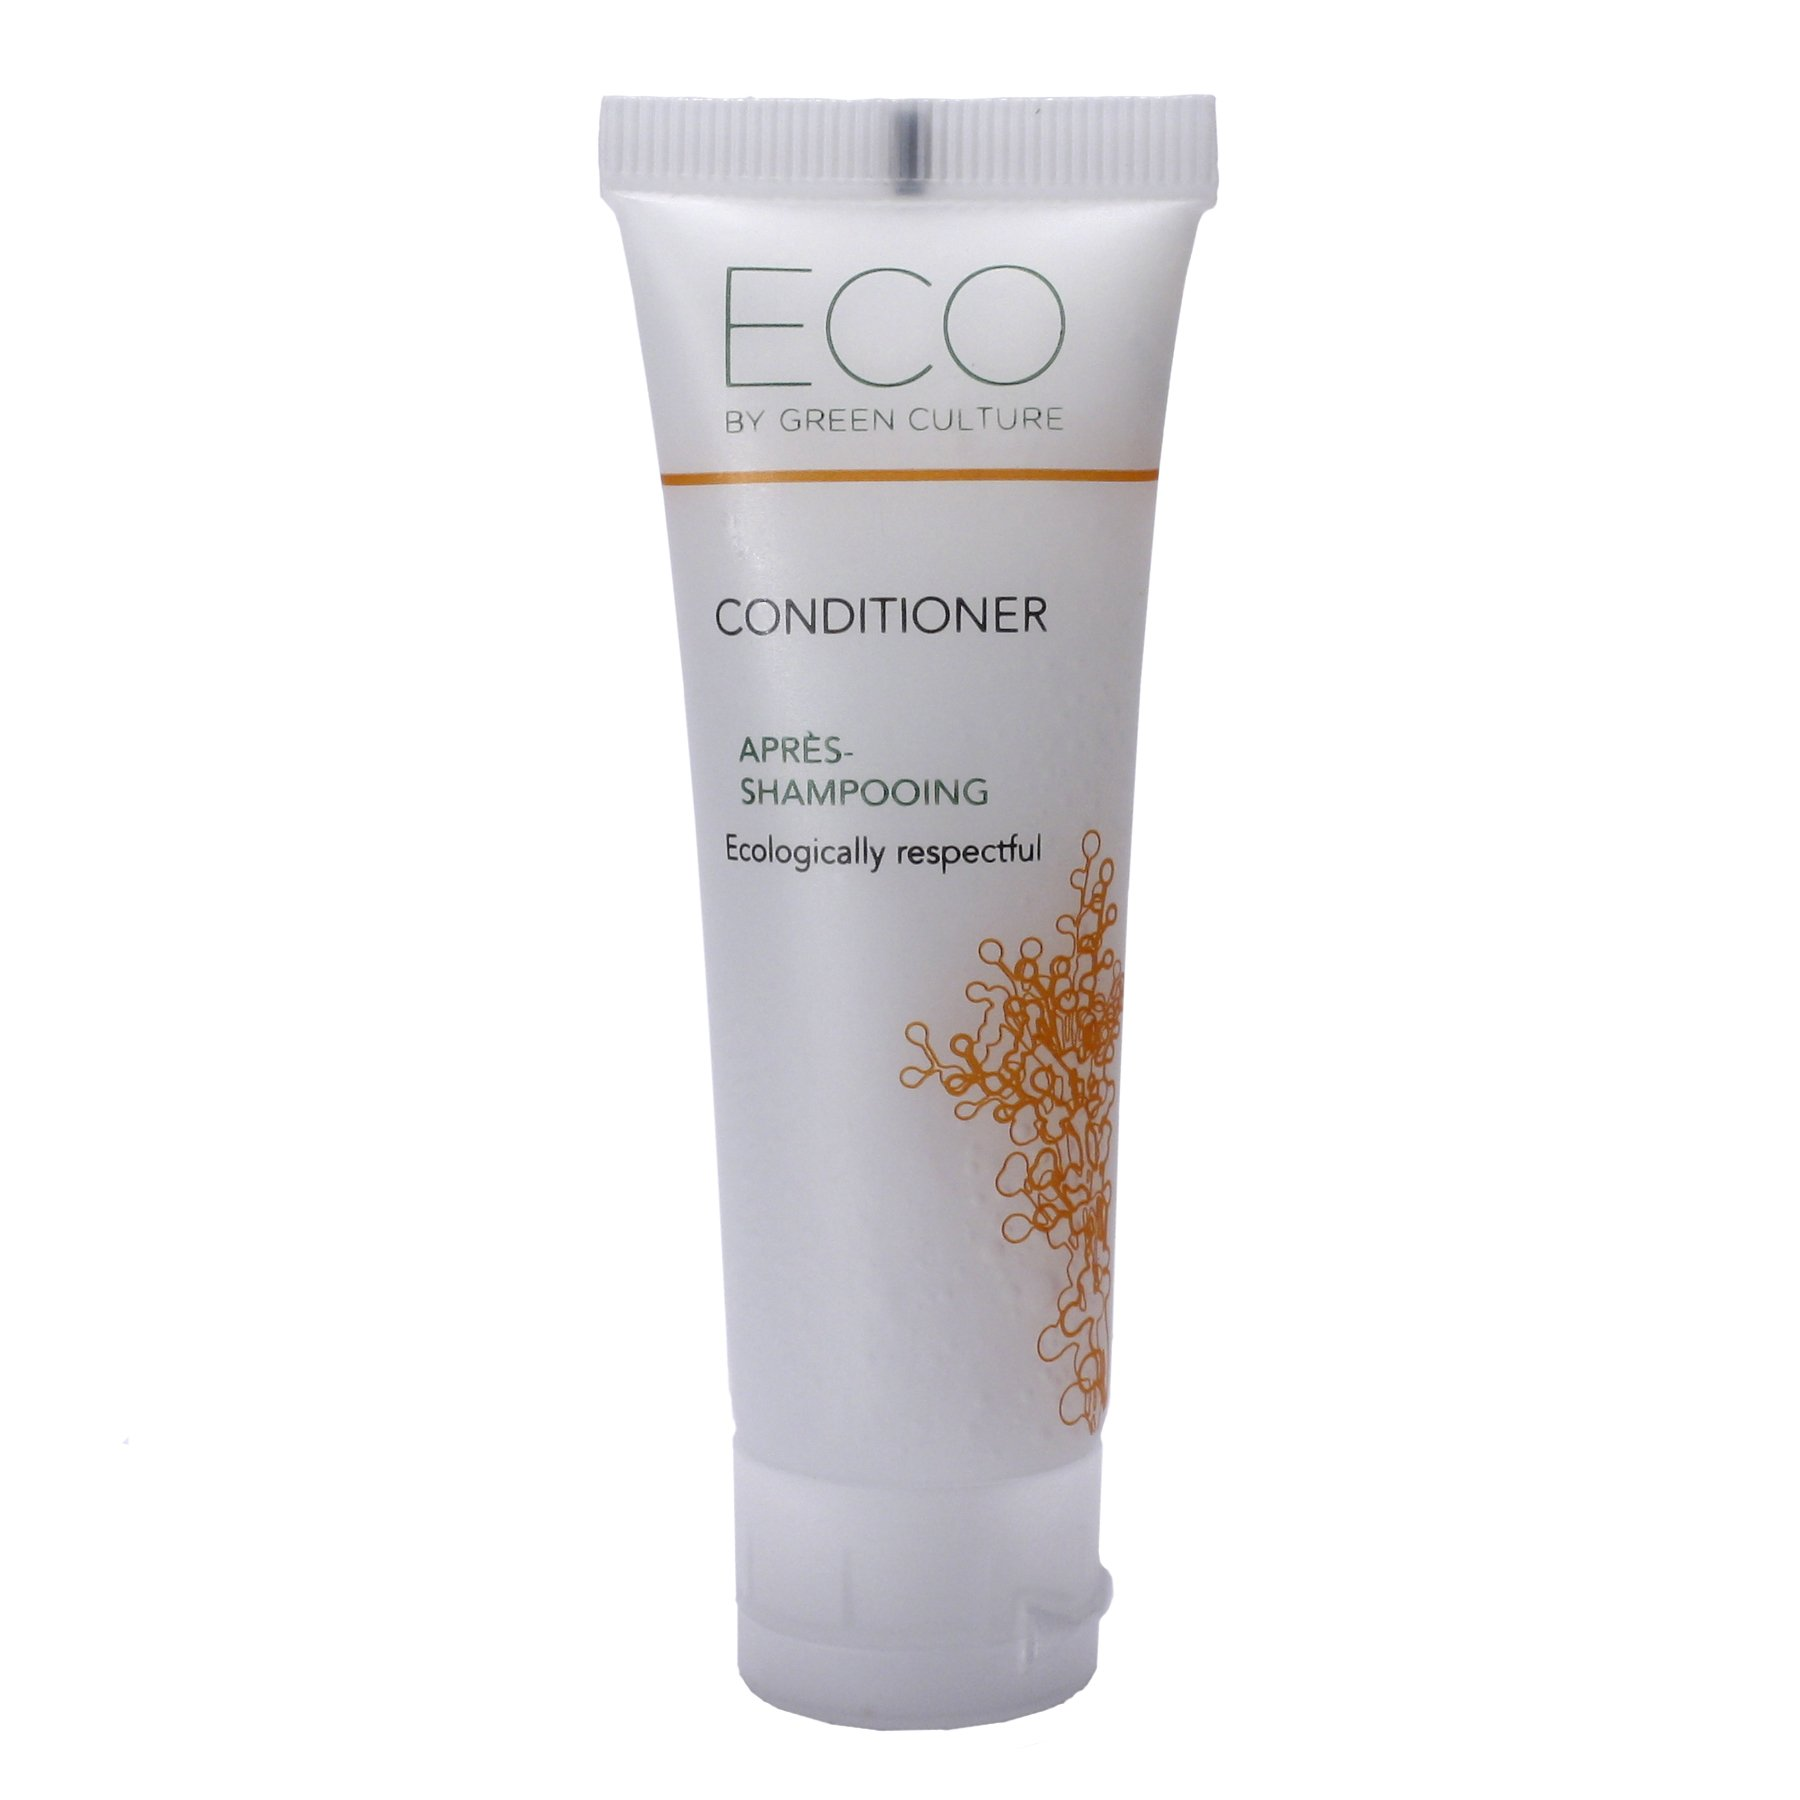 Eco by Green Culture Hotel Amenities Travel Sized Conditioner 30ml (288 Pack)